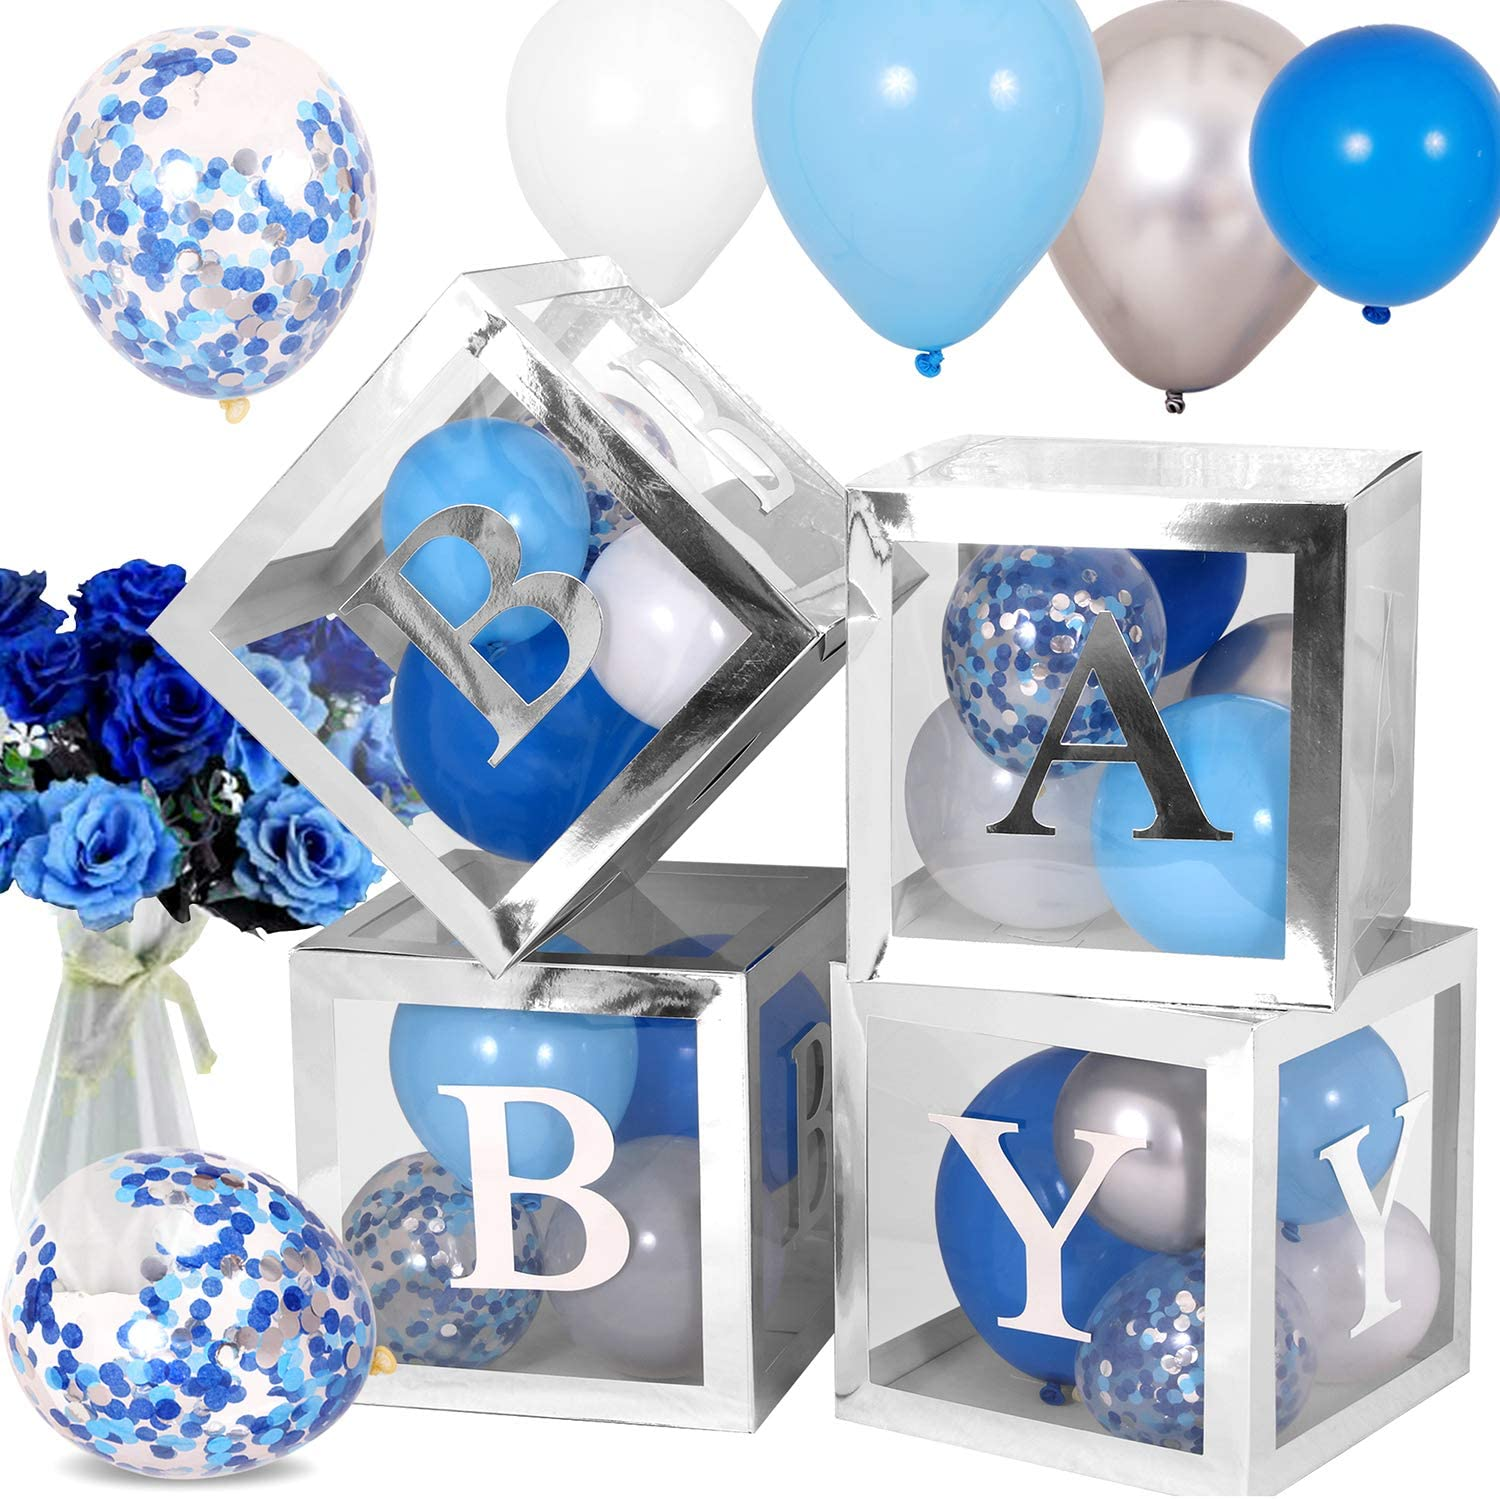 Baby Shower Decorations for Boy, Silver Transparent Boxes Includes 45Pcs Baby Blue Silver Grey Balloons for 1st Birthday Party, Elephant Baby Shower Boy, Pregnancy Announcements Party Decorations